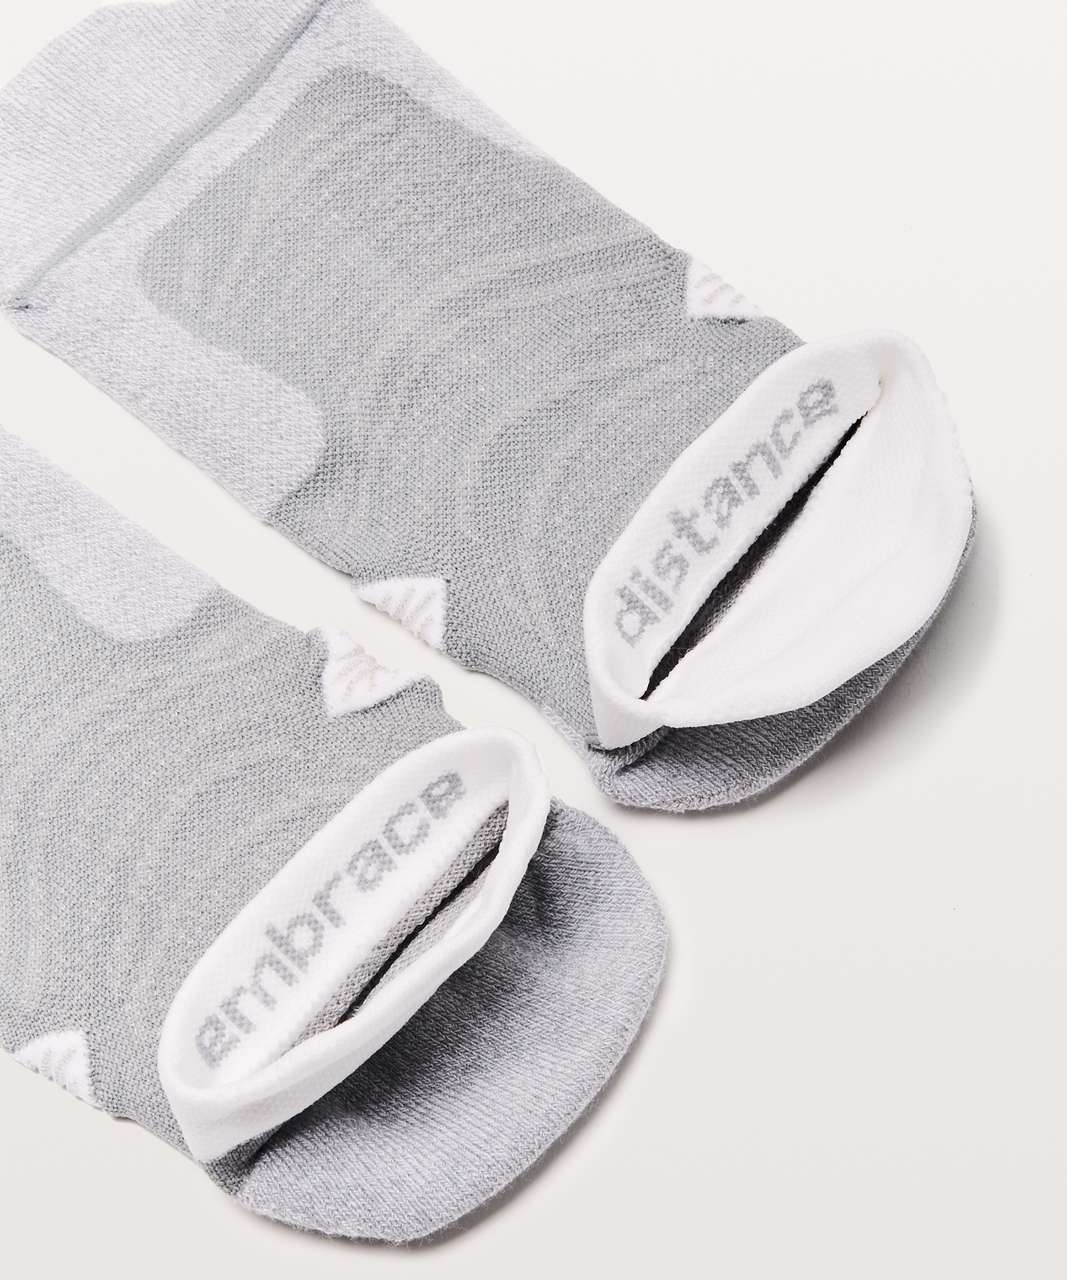 Lululemon Speed Sock *Silver - Light Cast / White